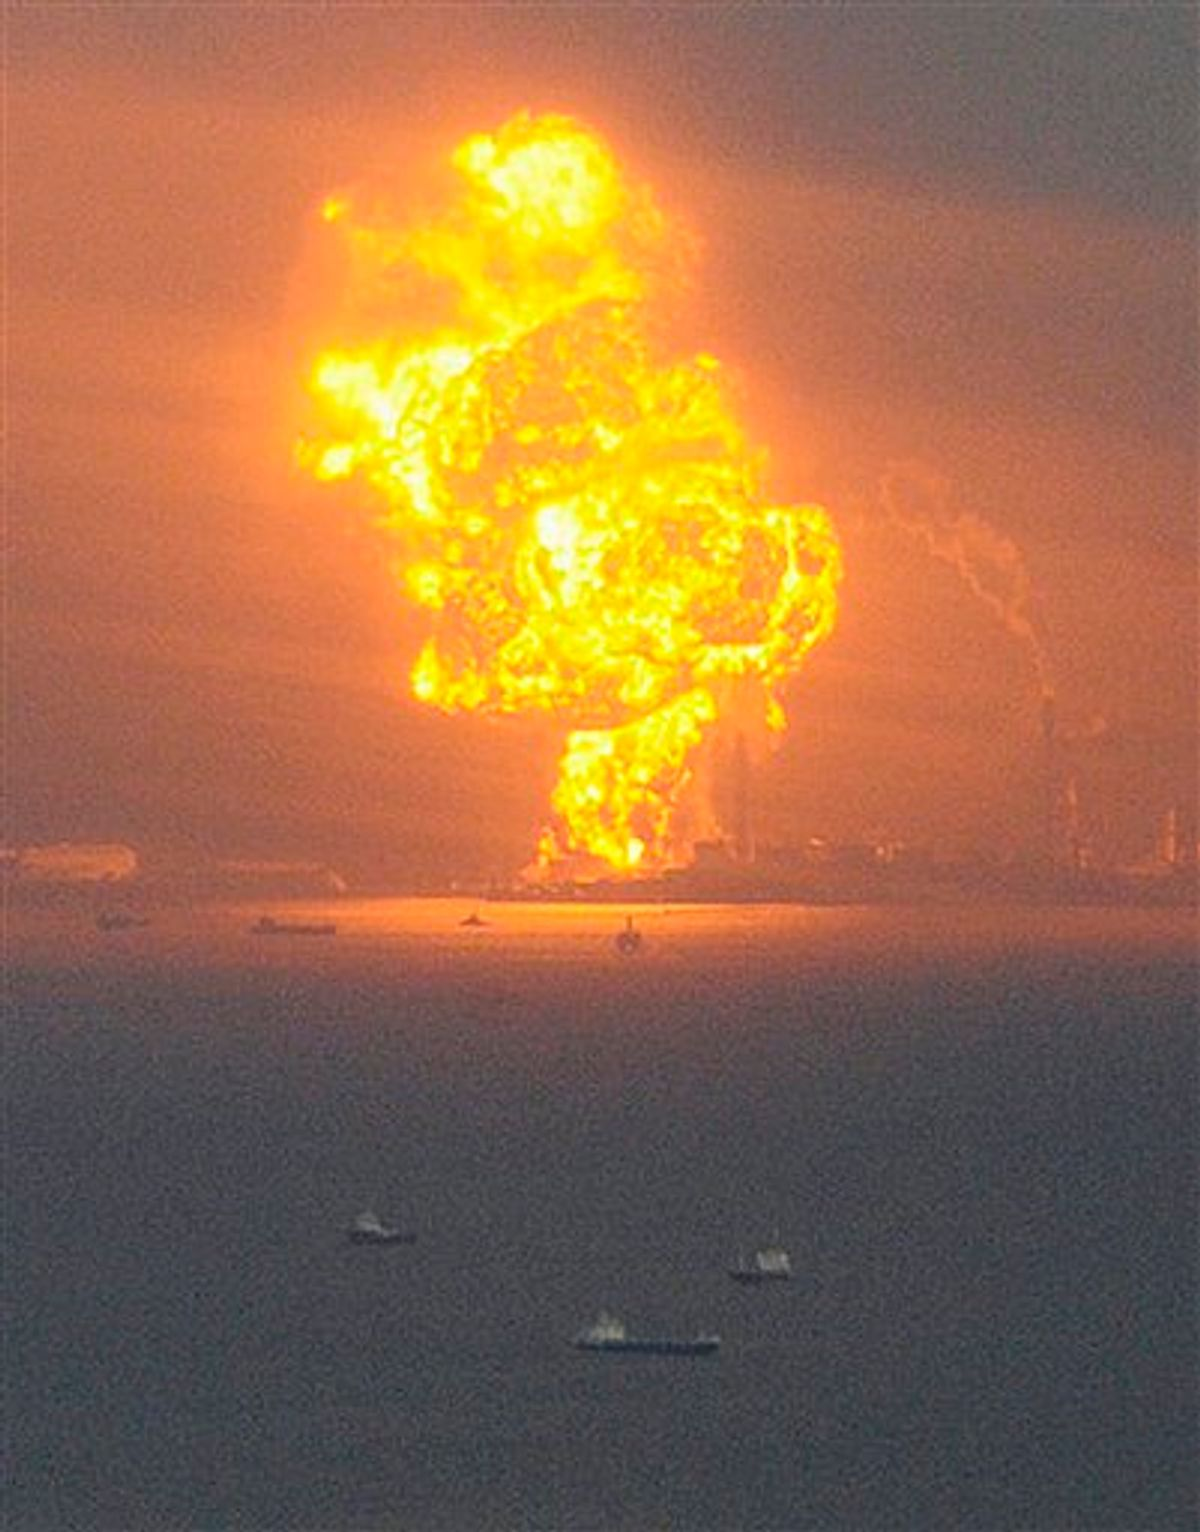 Flames rise from an oil refinery after a powerful earthquake in Ichihara, Chiba prefecture (state), Japan, Friday, March 11, 2011. The largest earthquake in Japan's recorded history slammed the eastern coast Friday. (AP Photo/Kyodo News) JAPAN OUT, MANDATORY CREDIT, FOR COMMERCIAL USE ONLY IN NORTH AMERICA (AP)